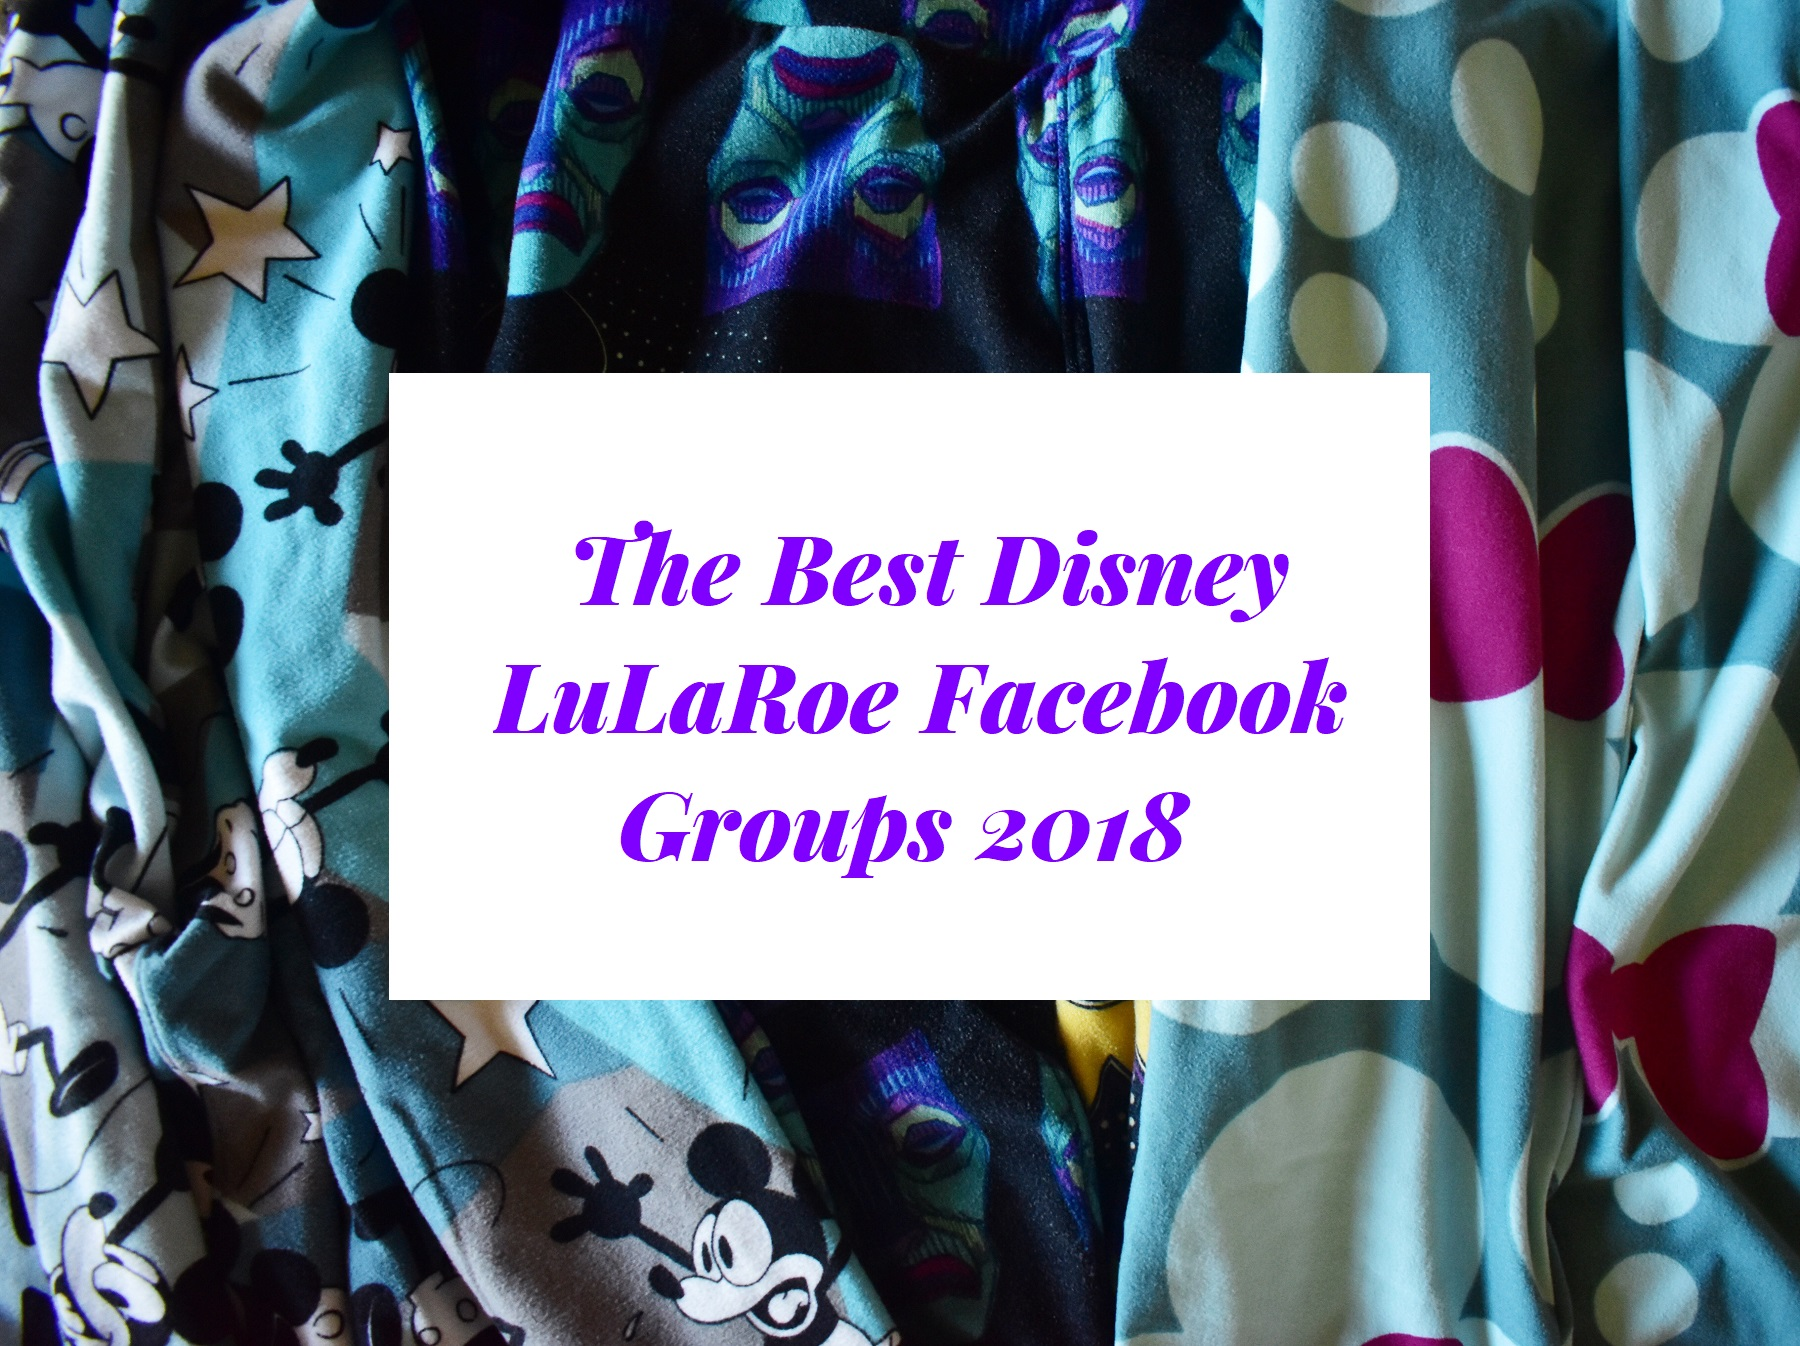 Disney LuLaRoe Facebook Groups